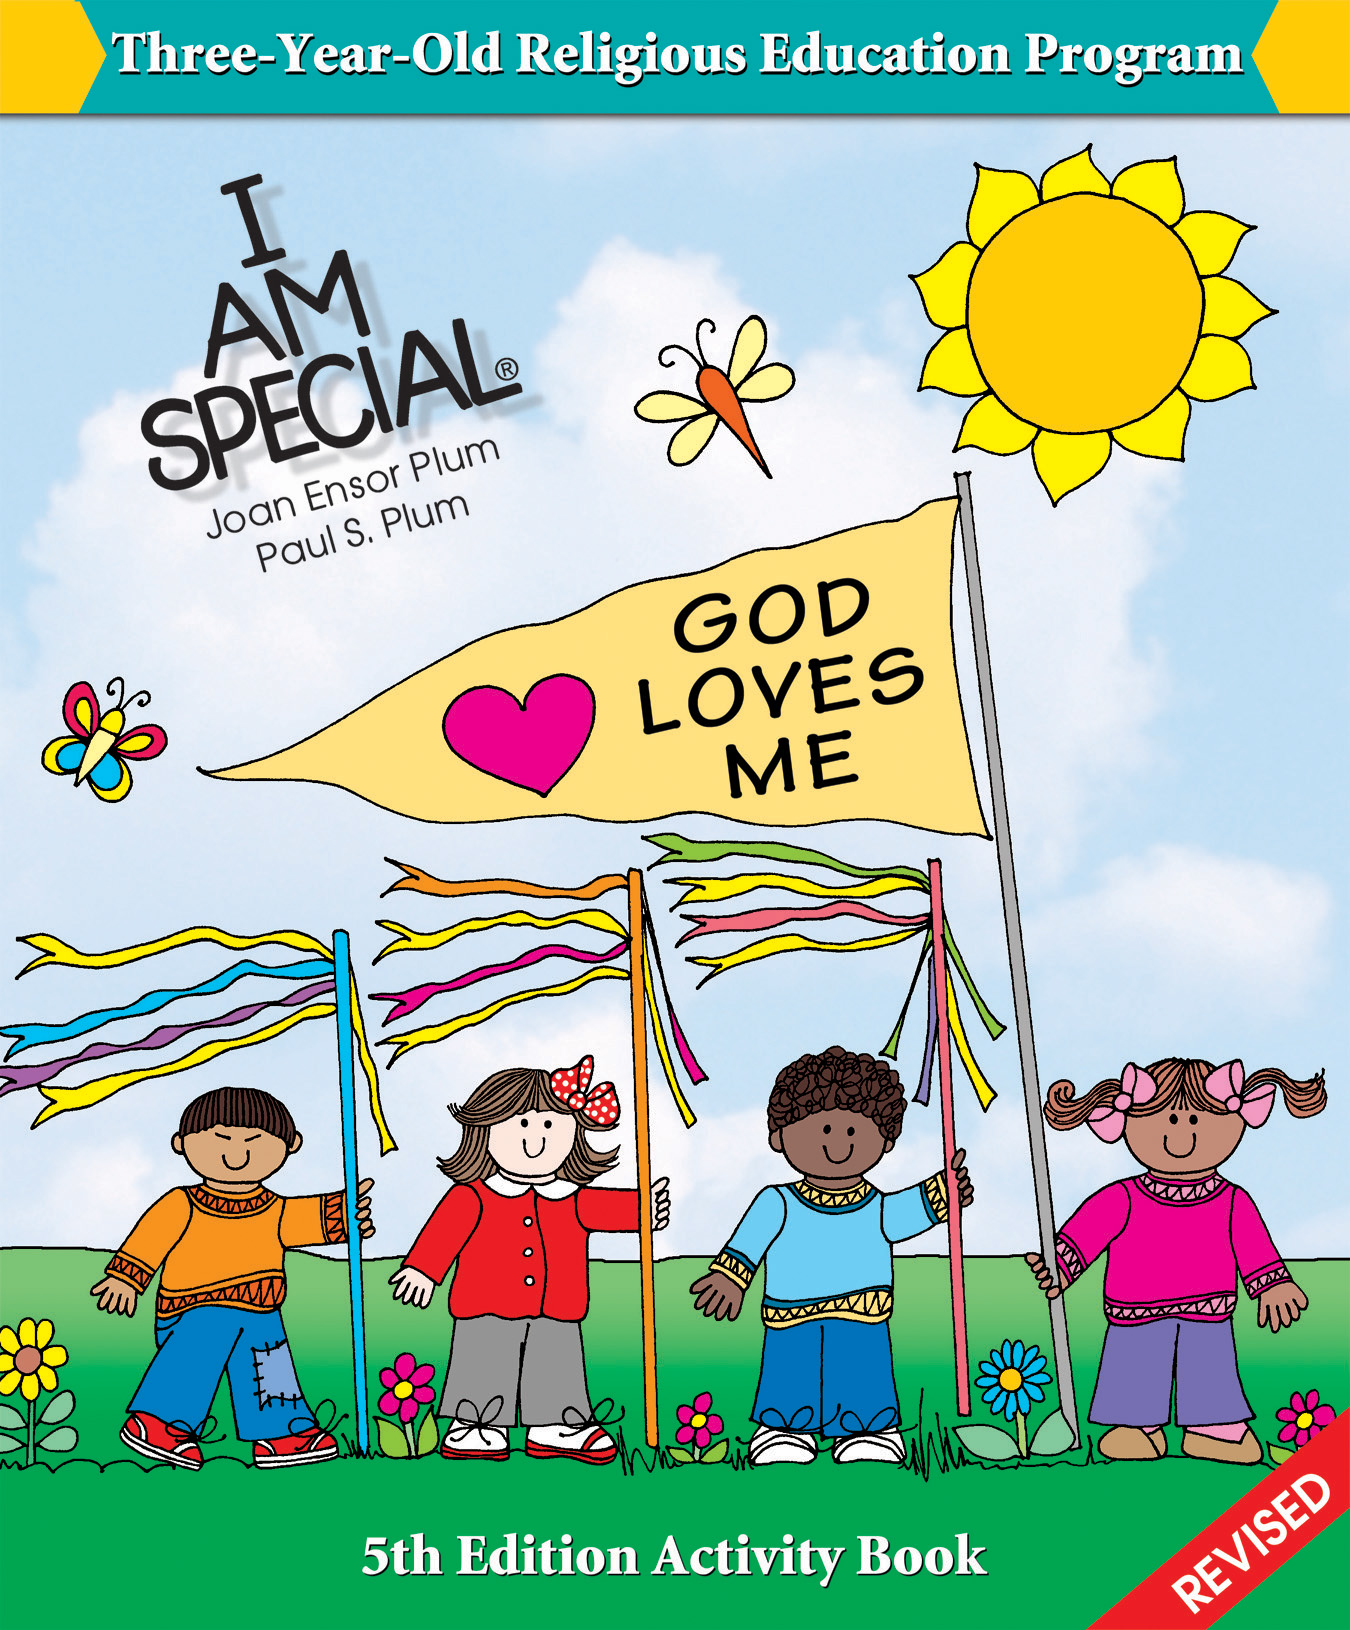 I Am Special 3-Year-Old Activity Book, 5th Ed.